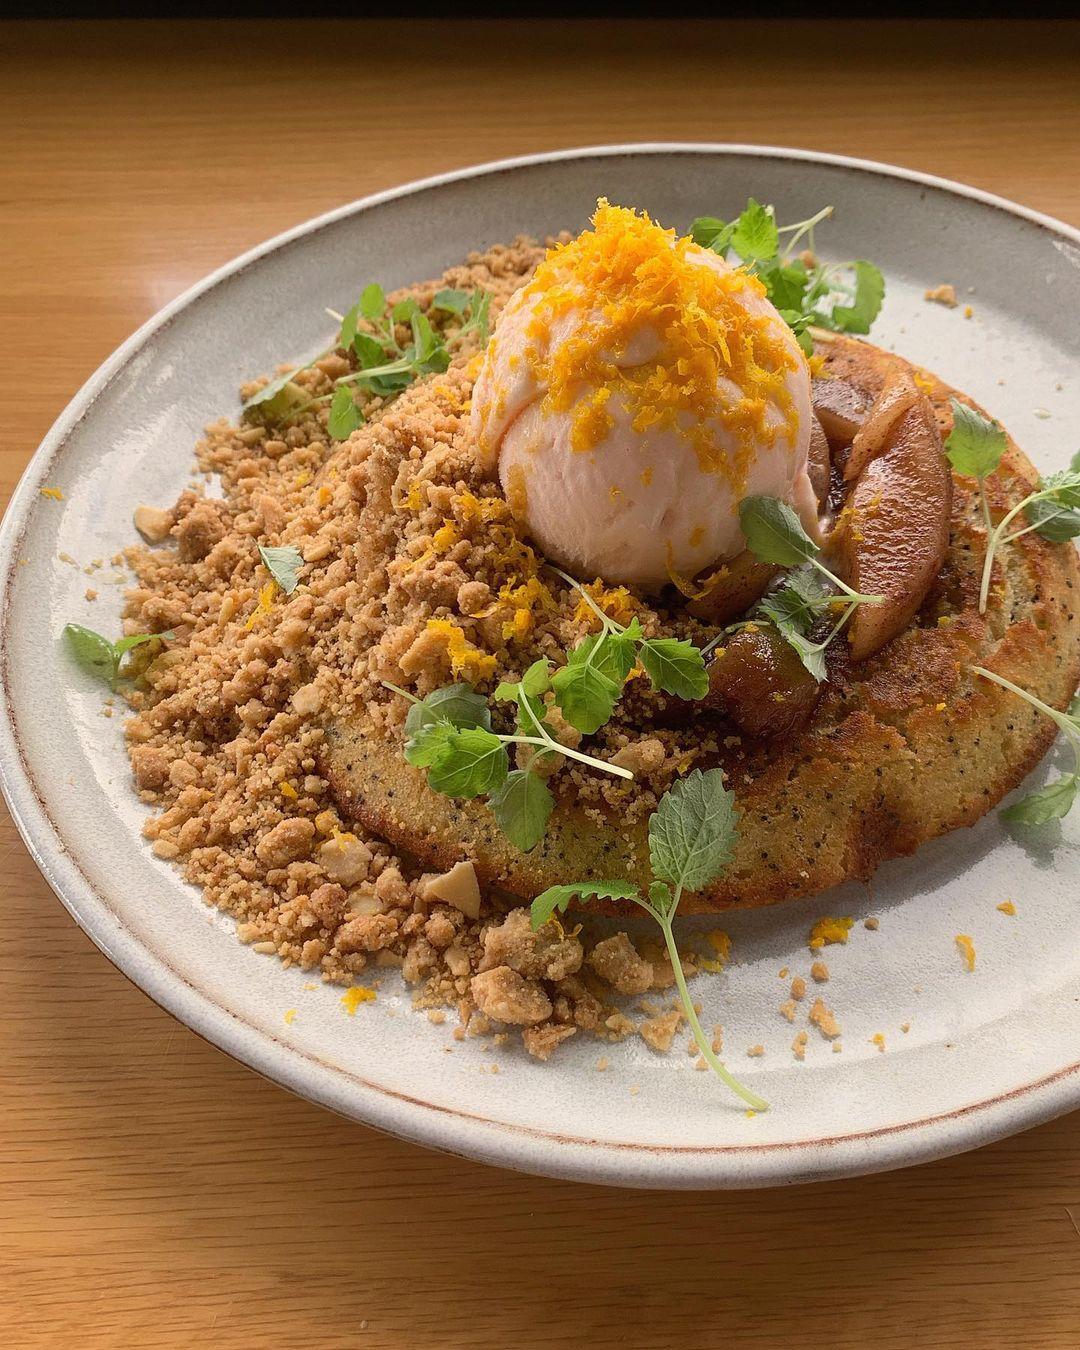 a pancake topped with ice cream and crumble